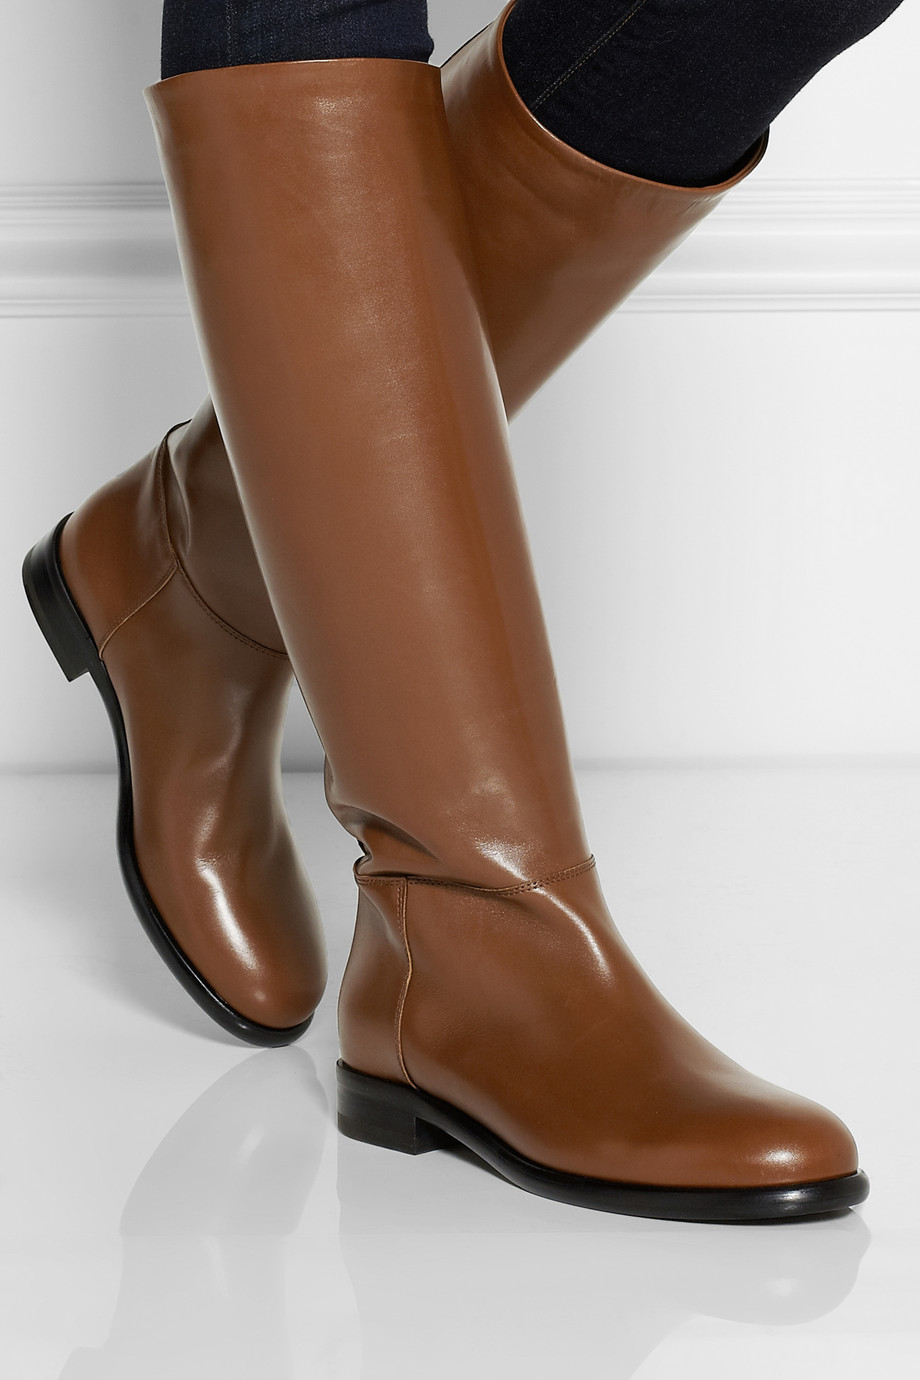 fall fashion finding the pair of brown boots